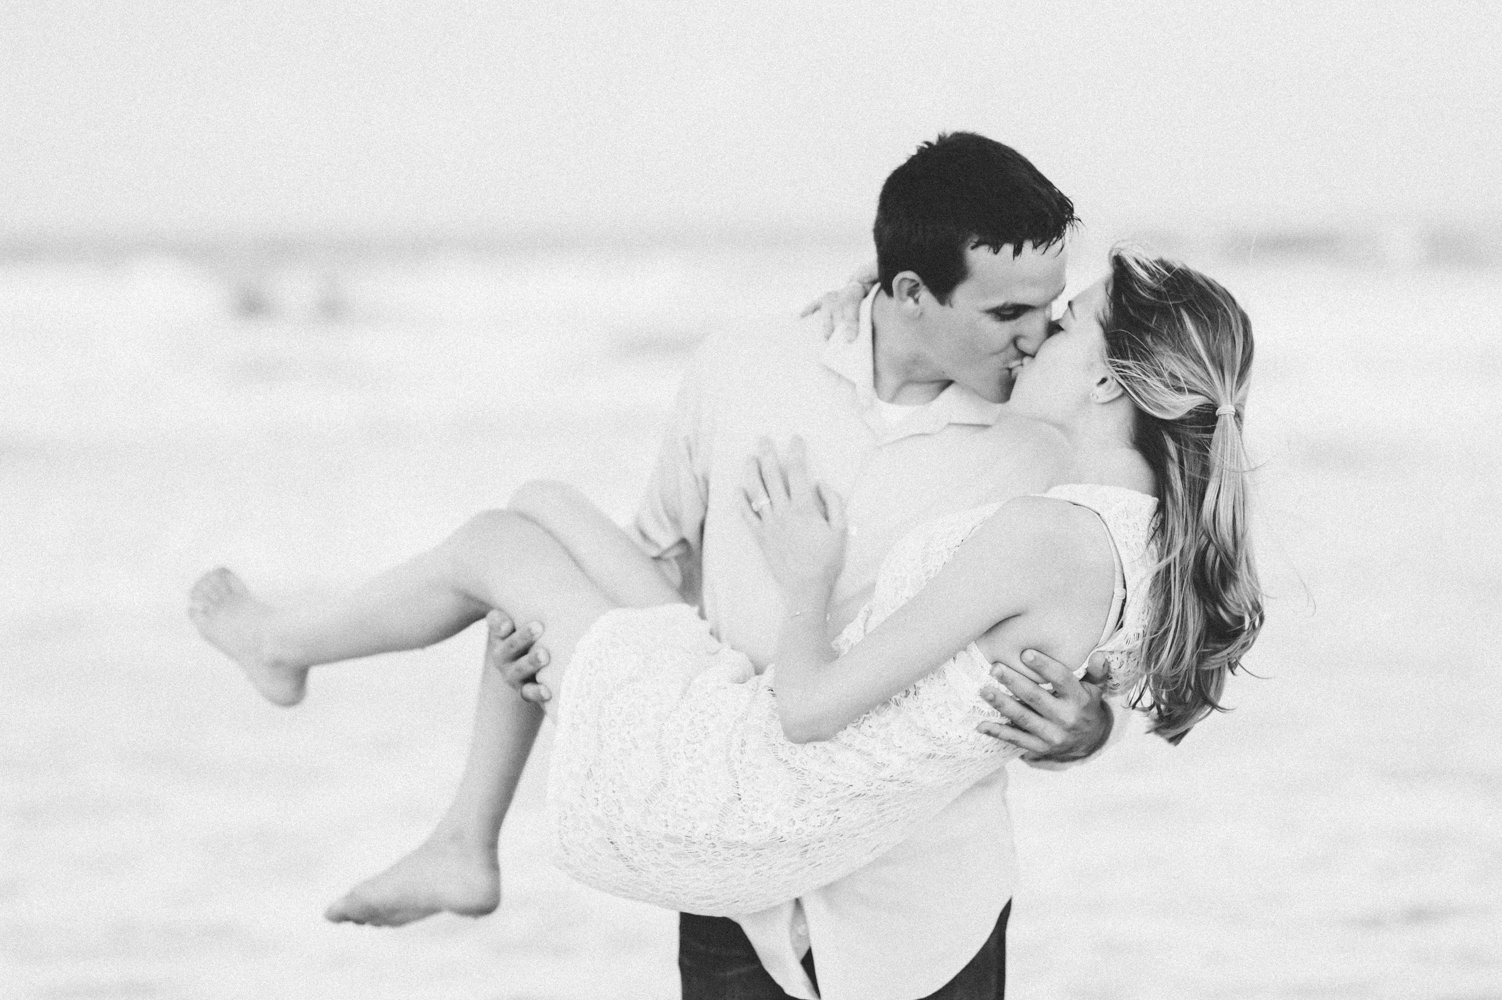 engagement-portraits-christina-forbes-photography-54